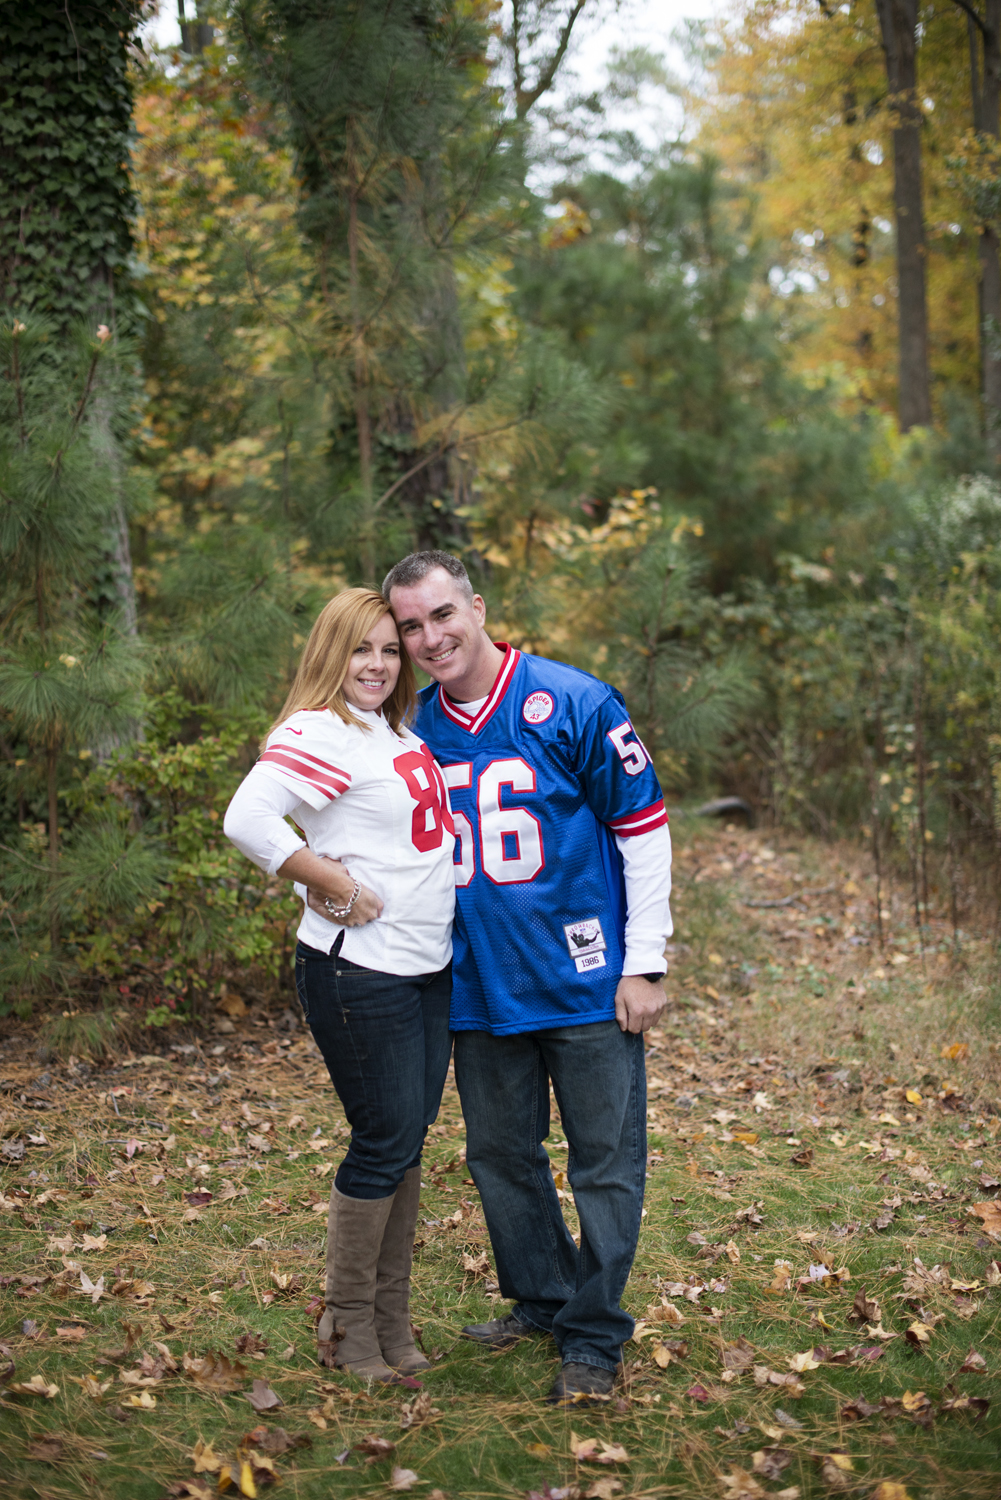 Fall engagement pictures with New York Giants football jerseys